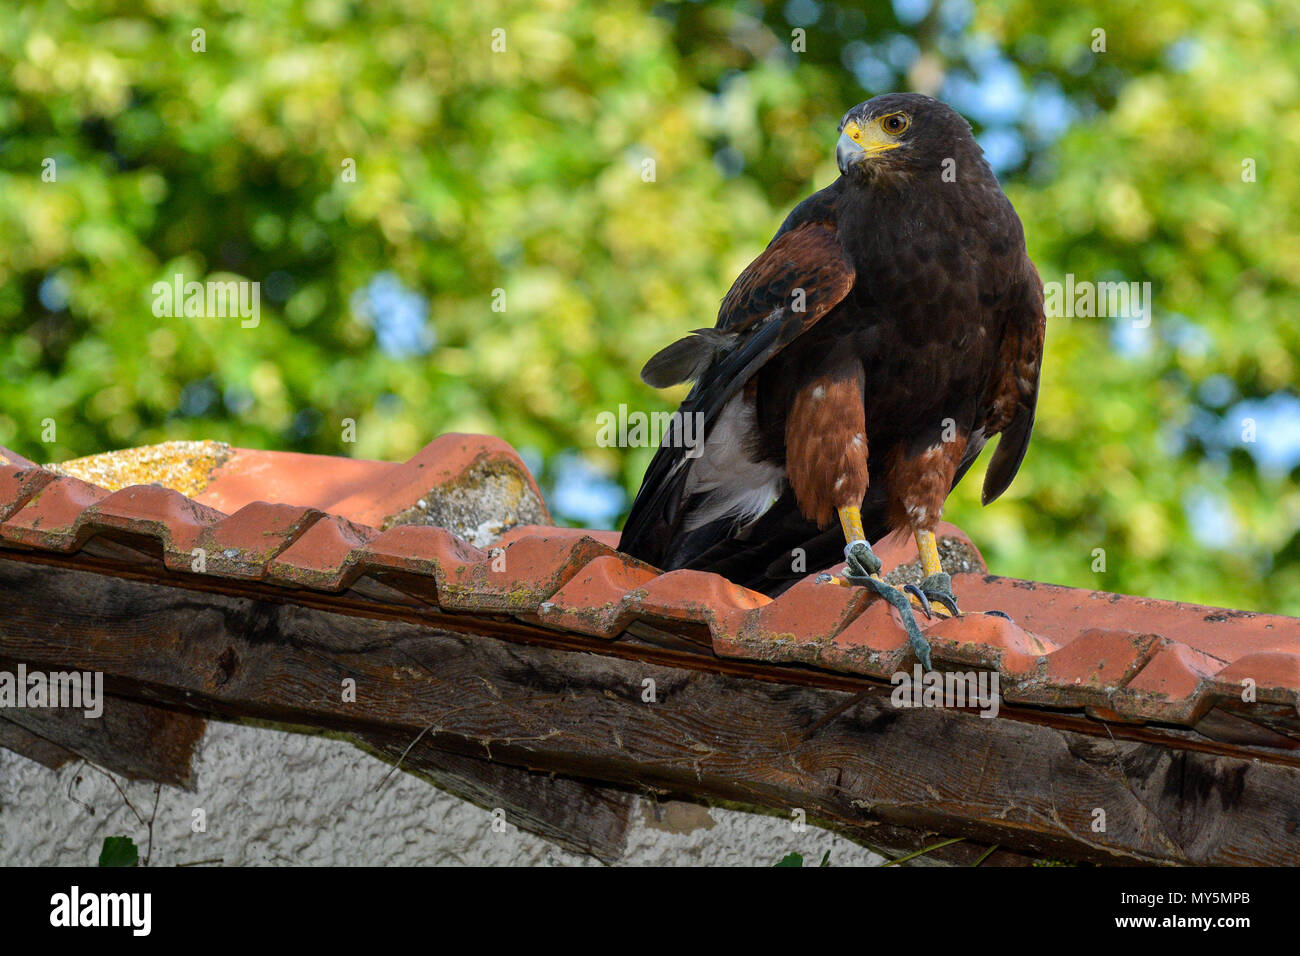 Larissa, Greece. 5th June, 2018. A Harris's hawk is seen during its training in Larissa, Greece, June 5, 2018. The Harris's hawk is particularly trained to chase away birds so that the city remains clean from bird droppings. Credit: Apostolos Domalis/Xinhua/Alamy Live News - Stock Image